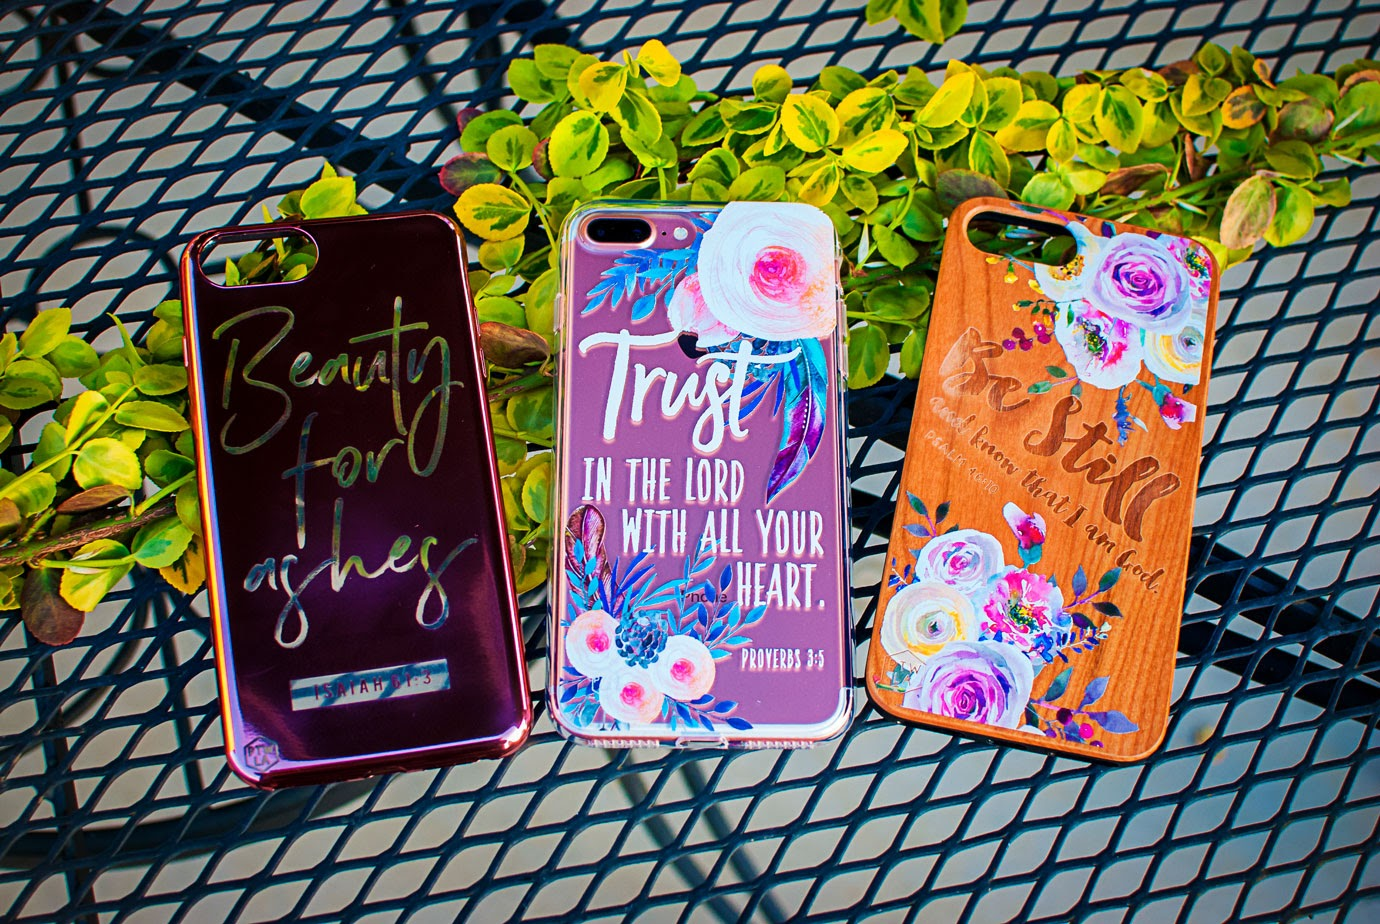 Trendy Floral Wood and Shimmer Phone Cases from Prone To Wander